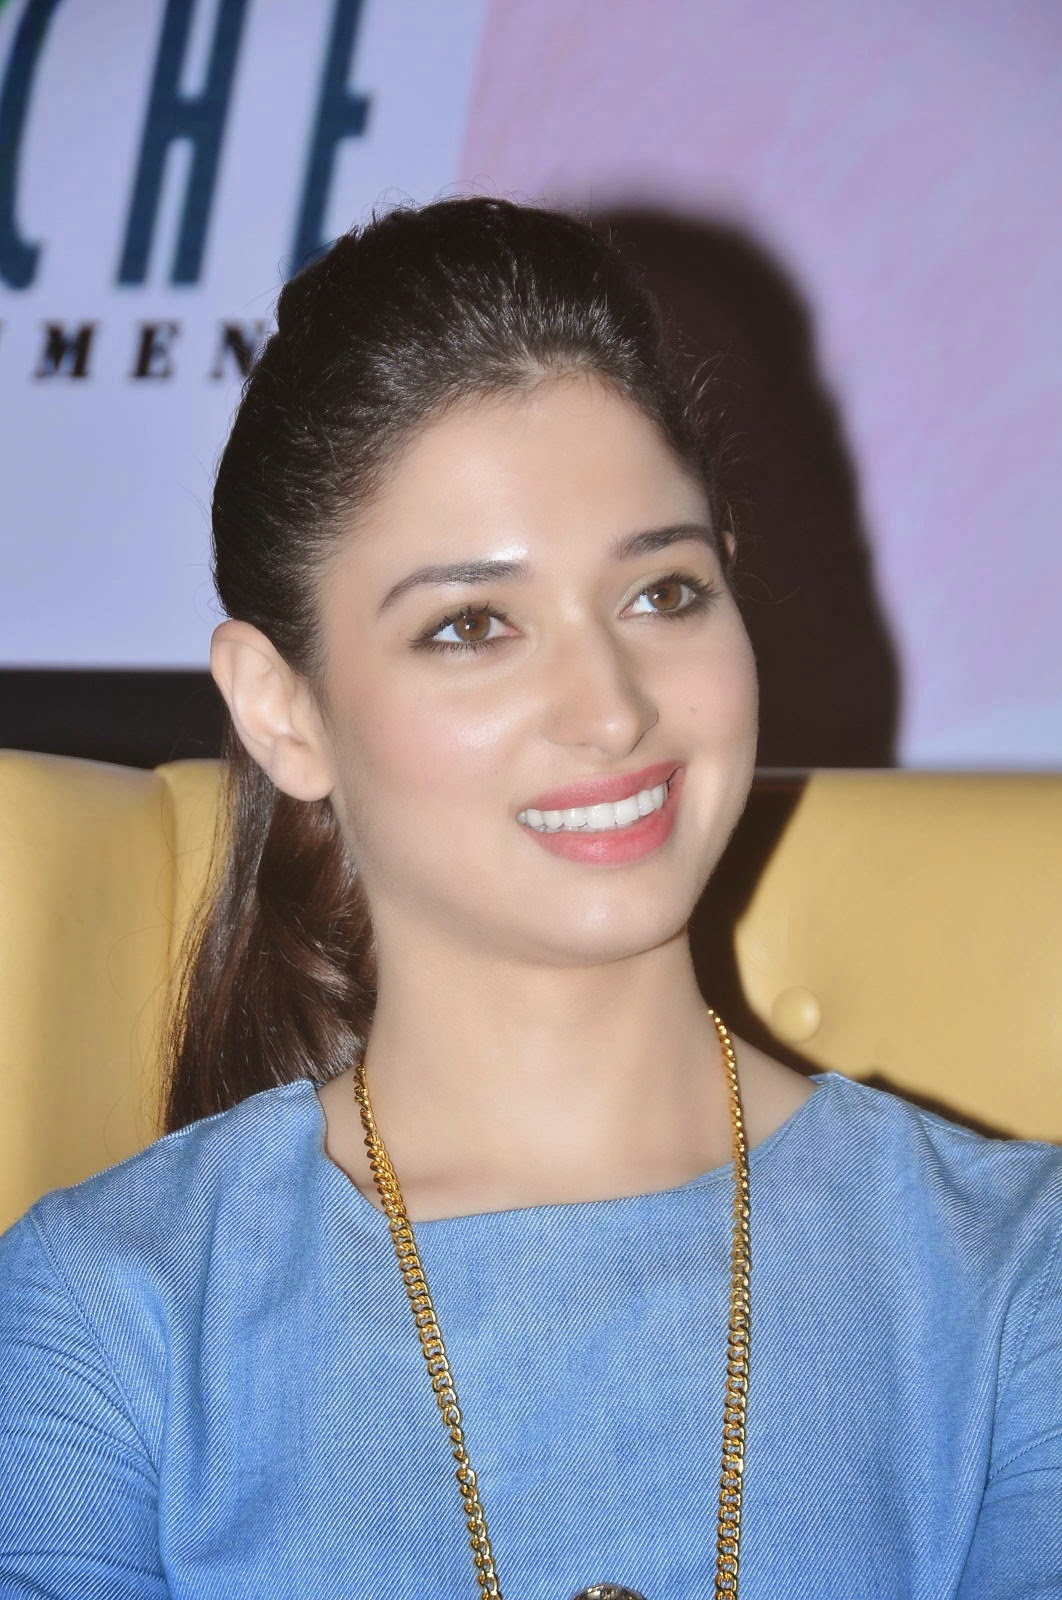 Tamannaah Bhatia Smiling Teeth Photos In Blue Top